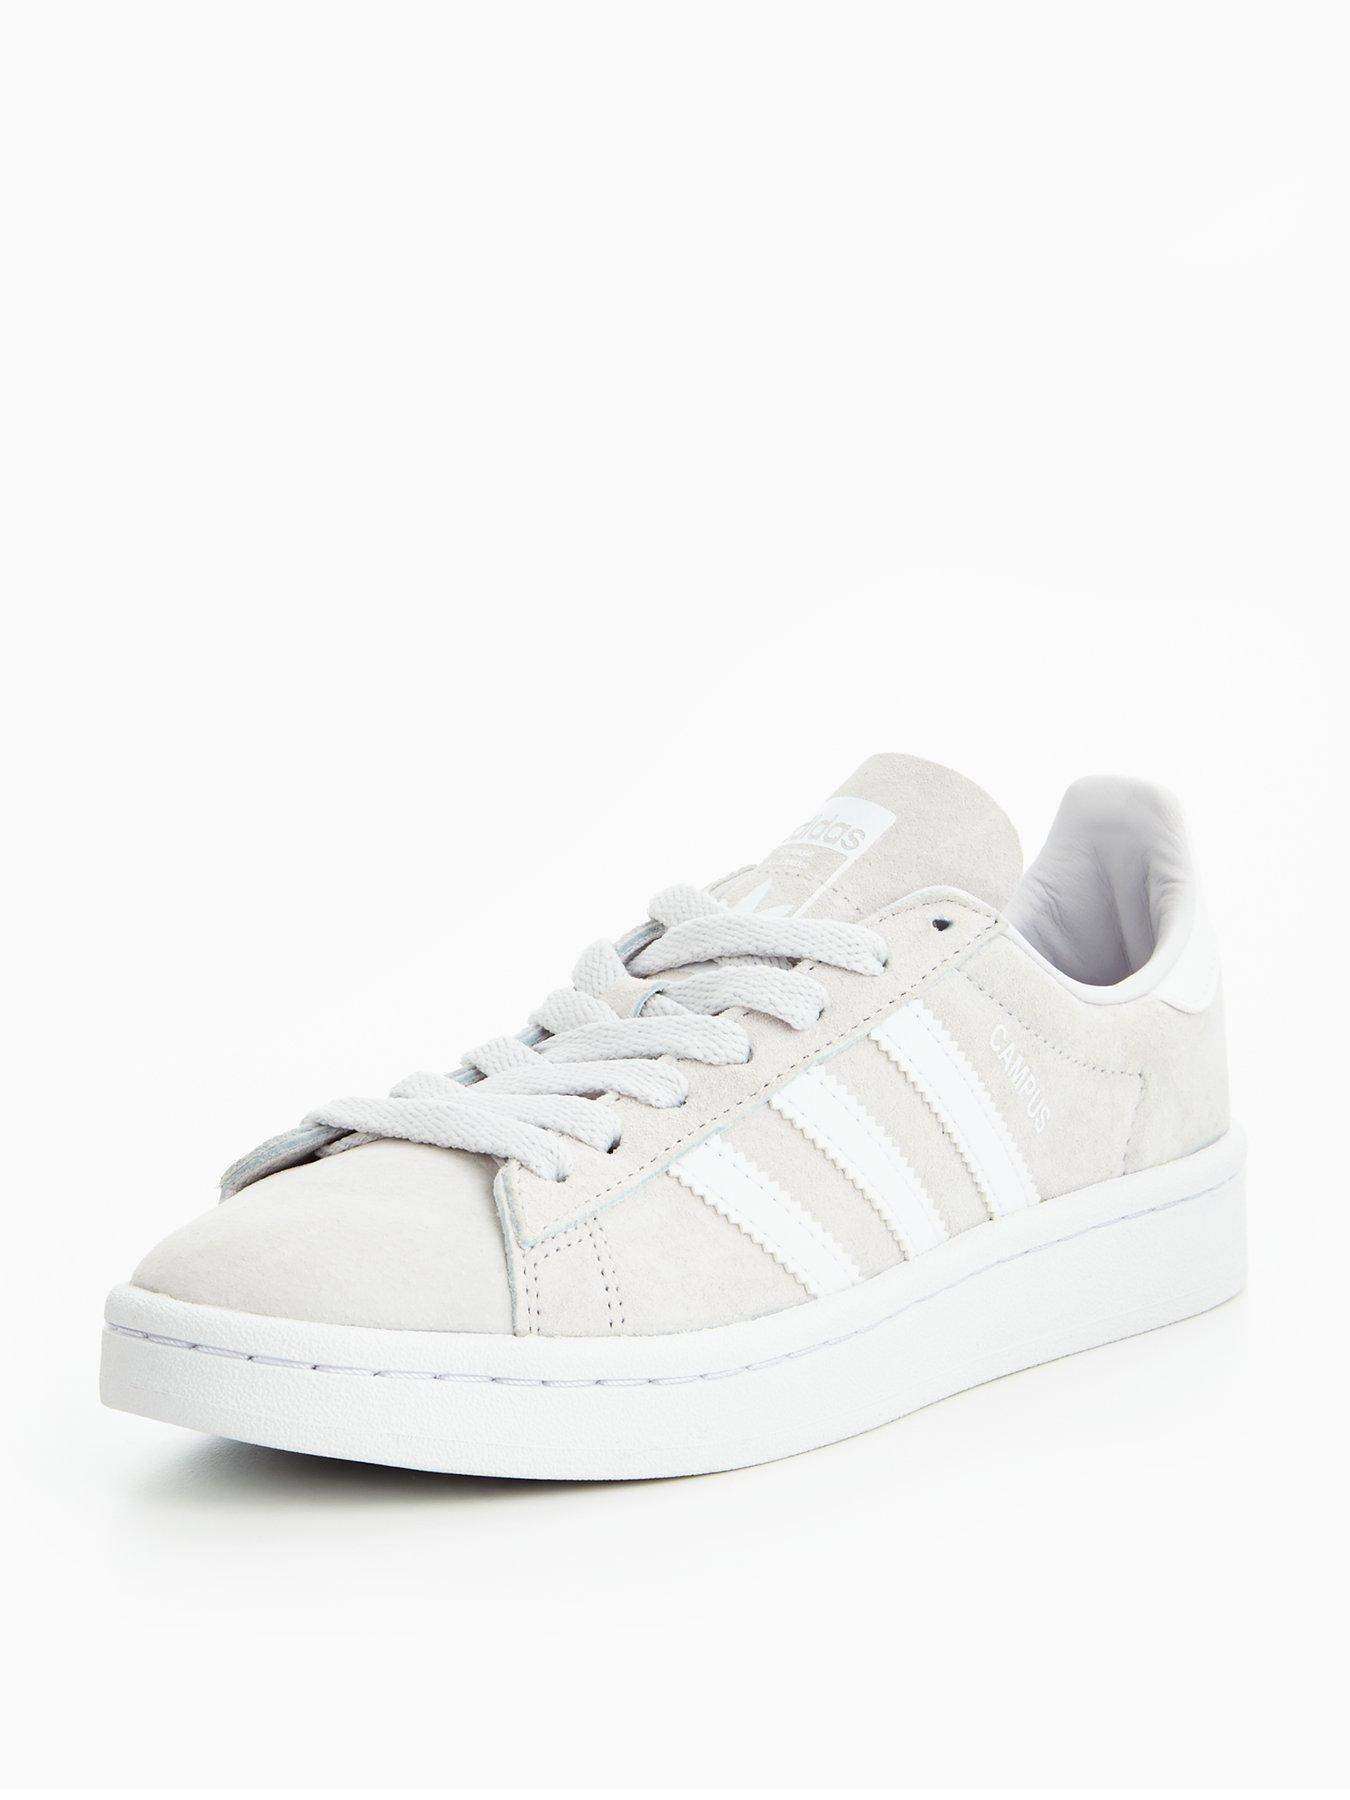 Adidas originali campus junior - allenatore